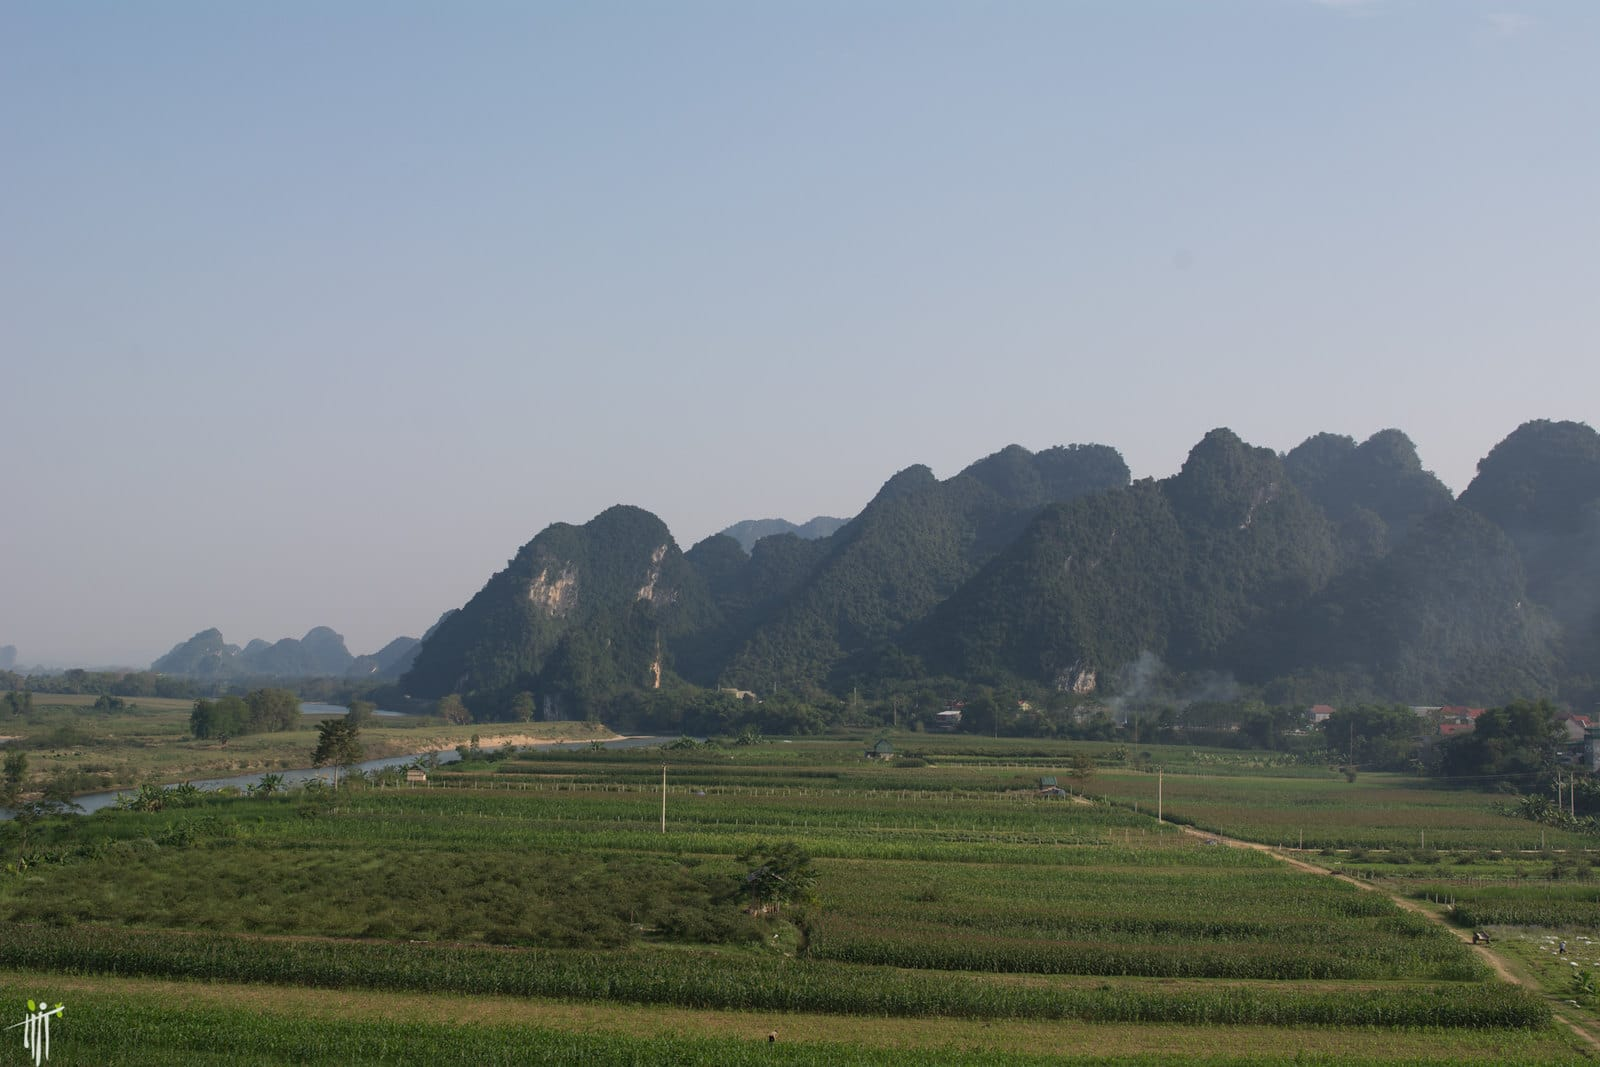 Con Cuong District in Nghe An Province, Vietnam